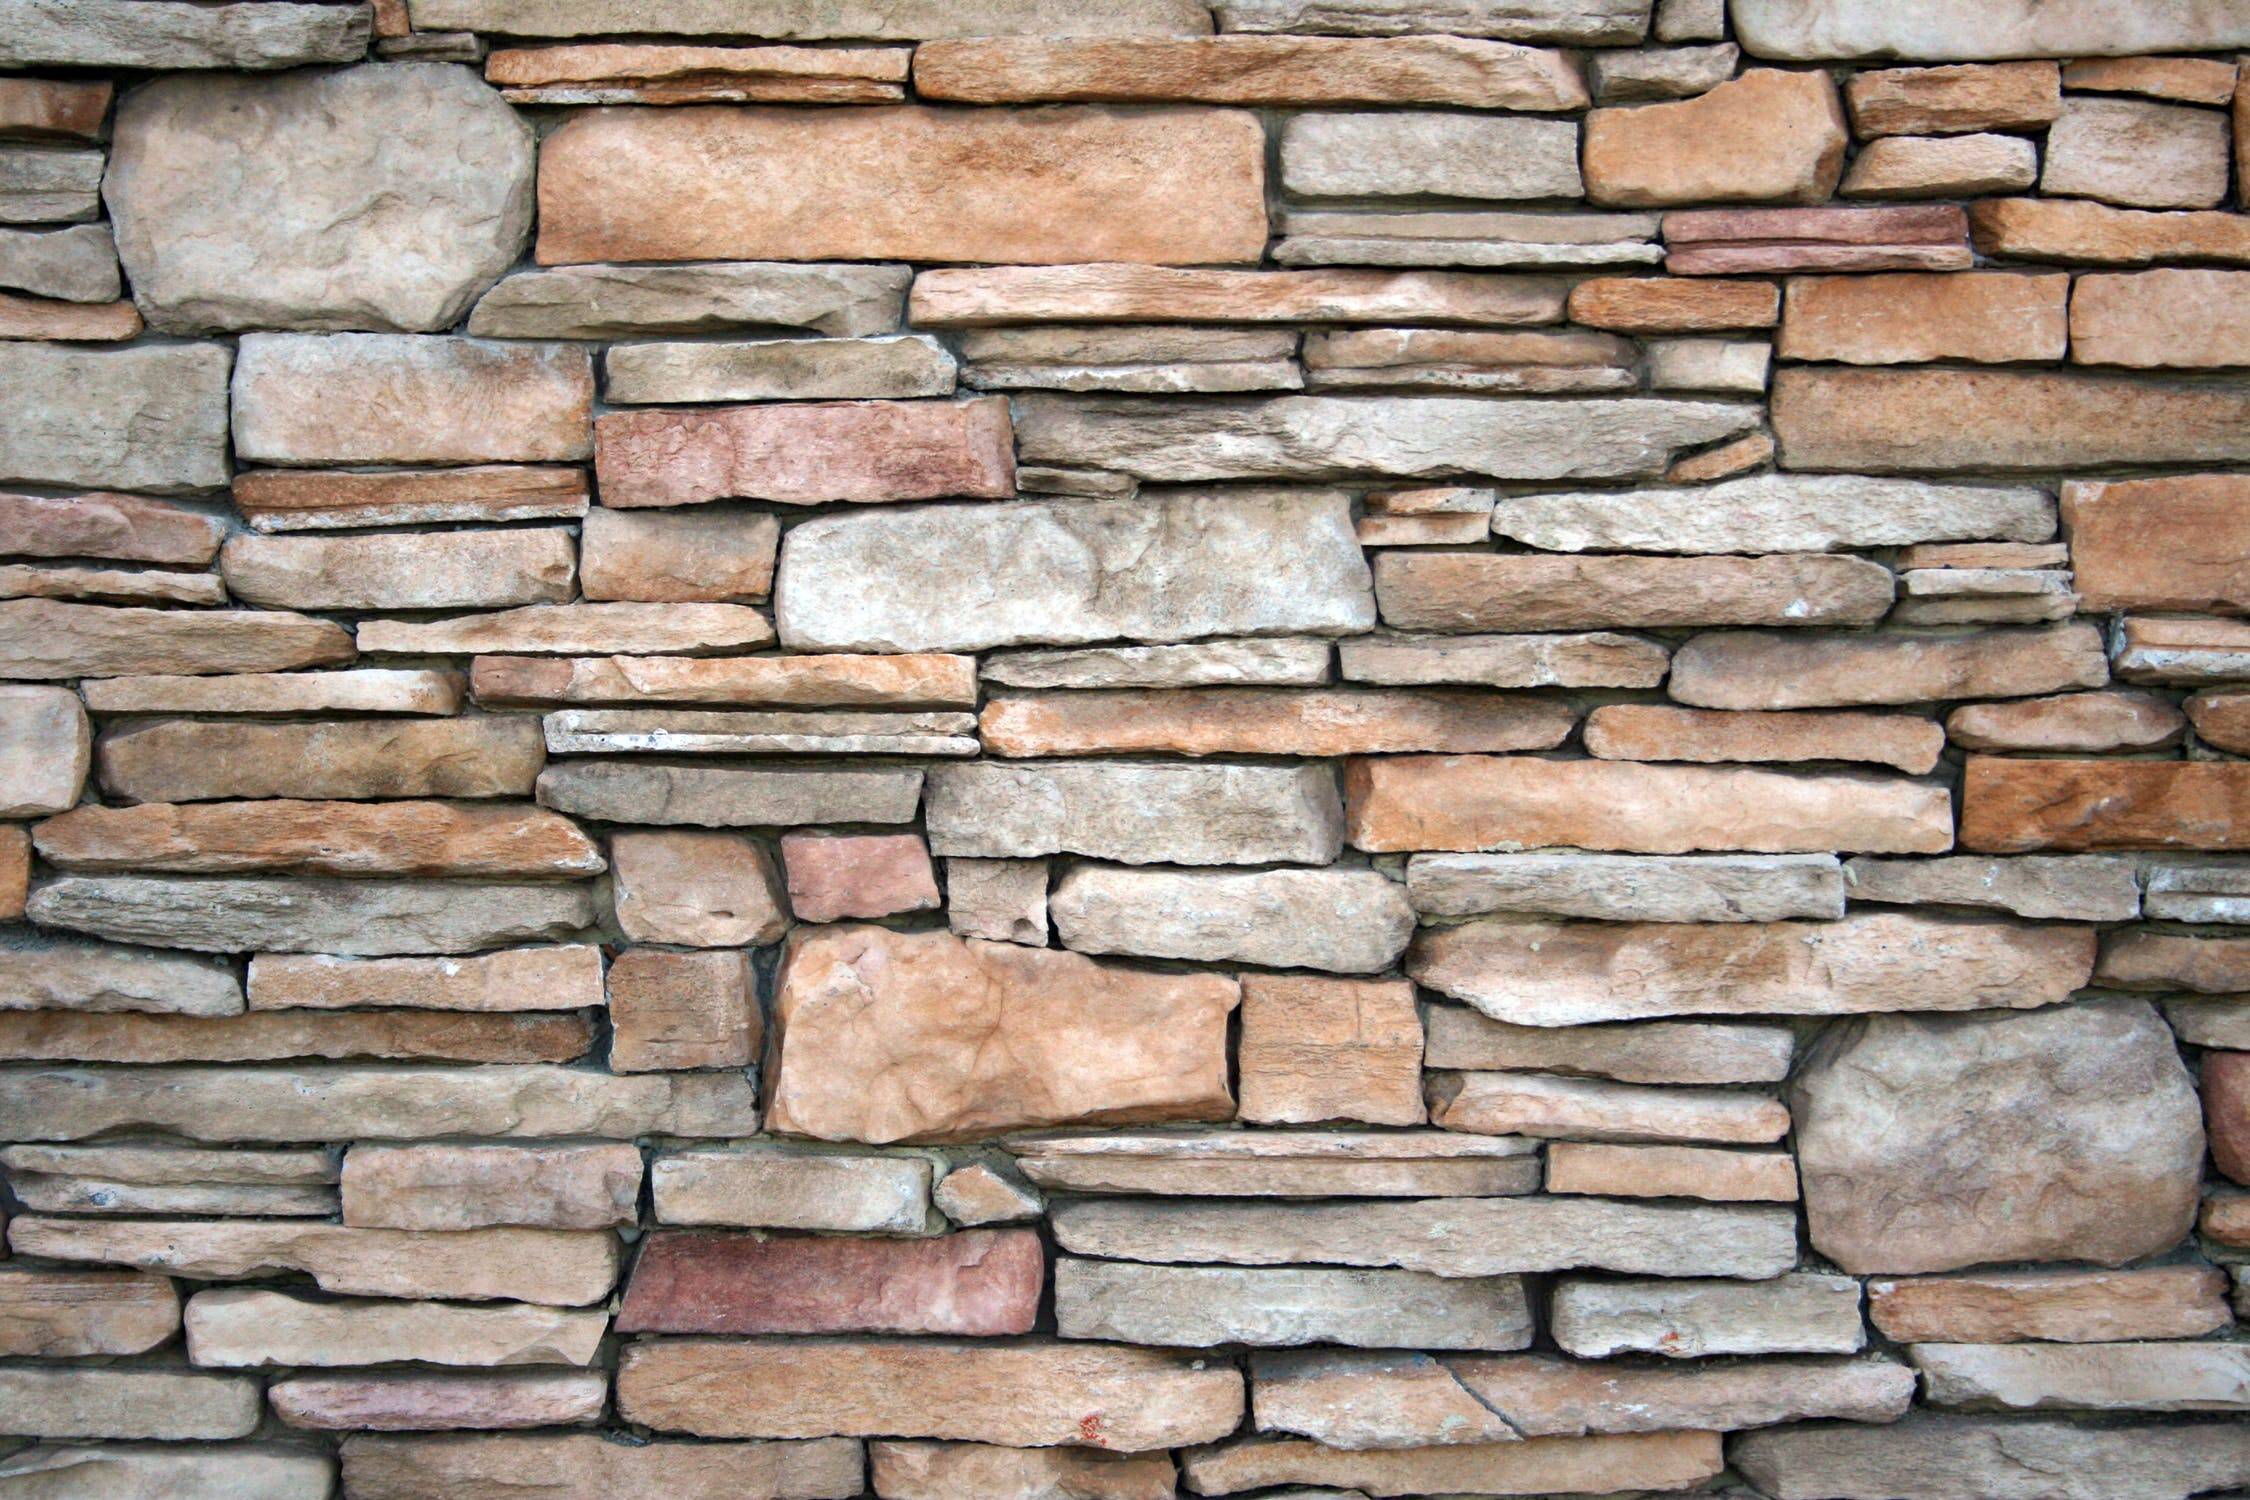 Masonry. - Weaver Gardens will feature display samples and stone patterns to help narrow down your decision. Our design experts will also be available to make recommendations during a complimentary consultation.